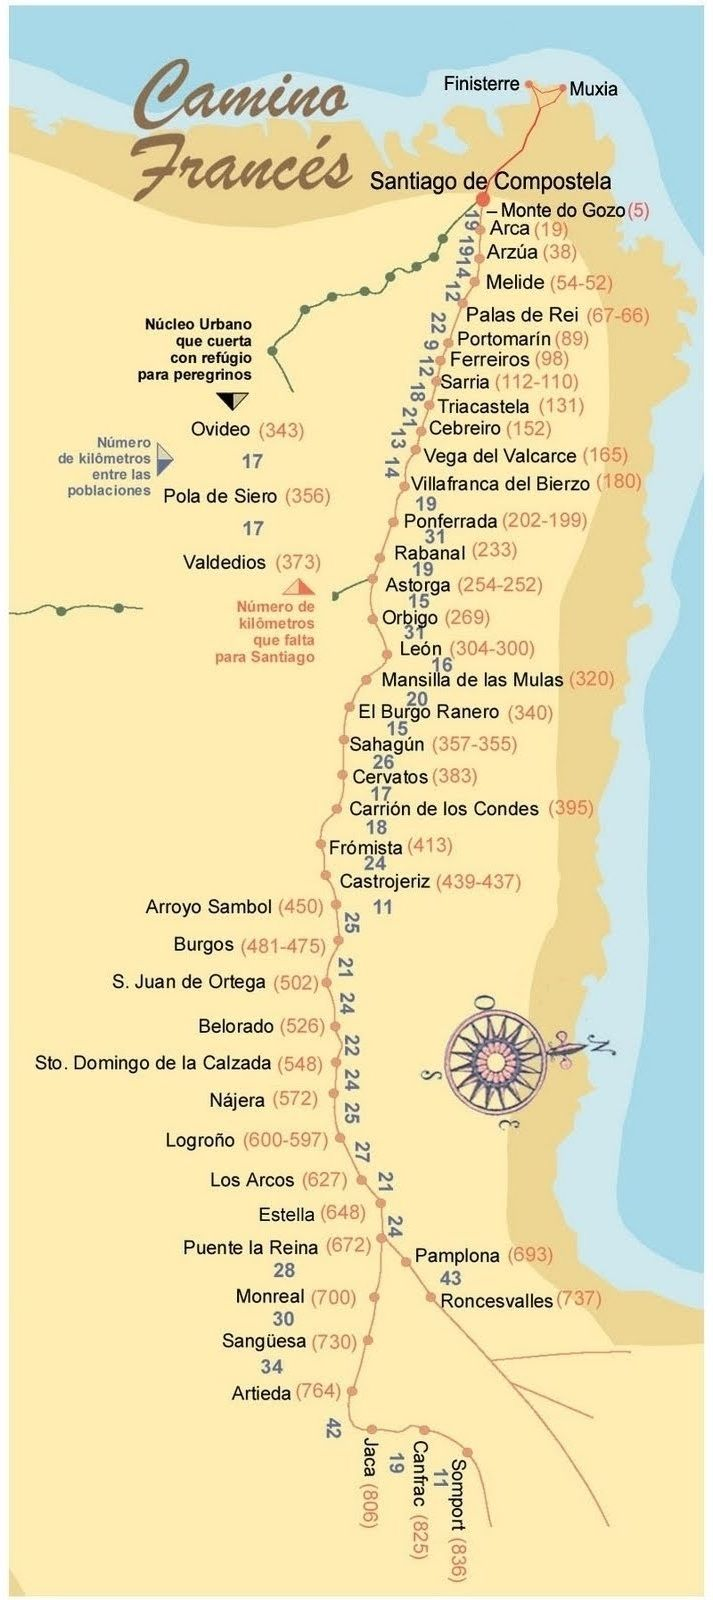 Caminho de Santiago de Compostela. ** For those people who aren't acquainted with the Camino, or Spain, this map is sideways.